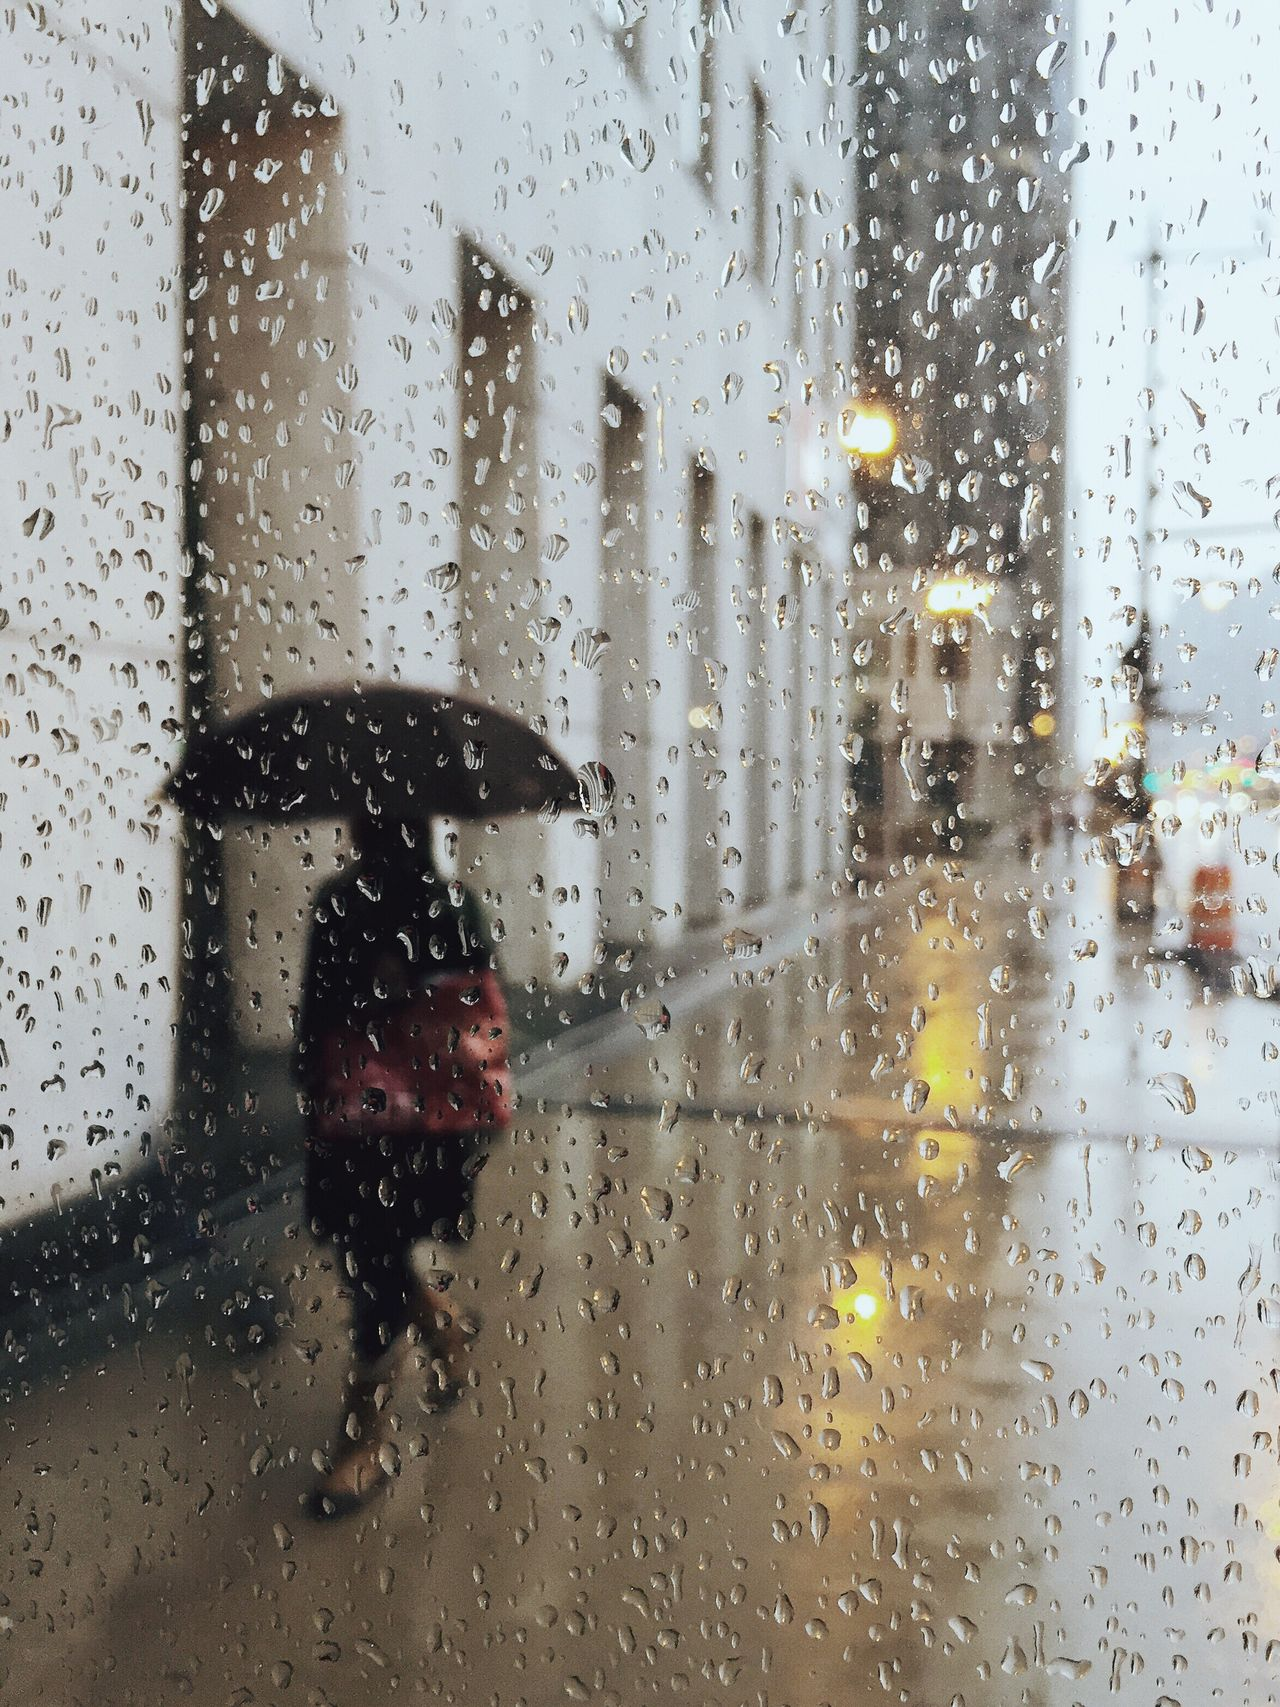 Rain Wet Glass - Material Window Weather Transparent Drop Rainy Season RainDrop Water Monsoon Transportation Vehicle Interior Car One Person Reflection Looking Through Window Torrential Rain Waiting Land Vehicle